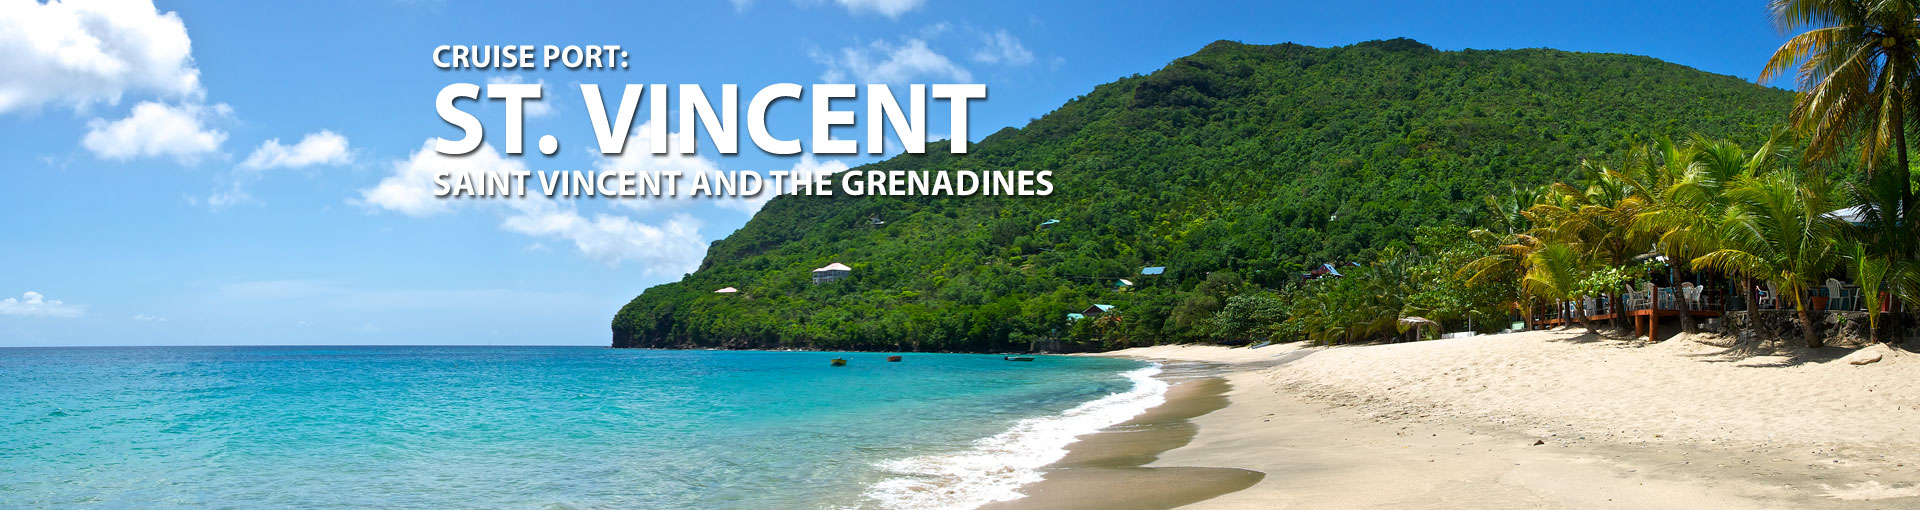 Cruises to St. Vincent and The Grenadines